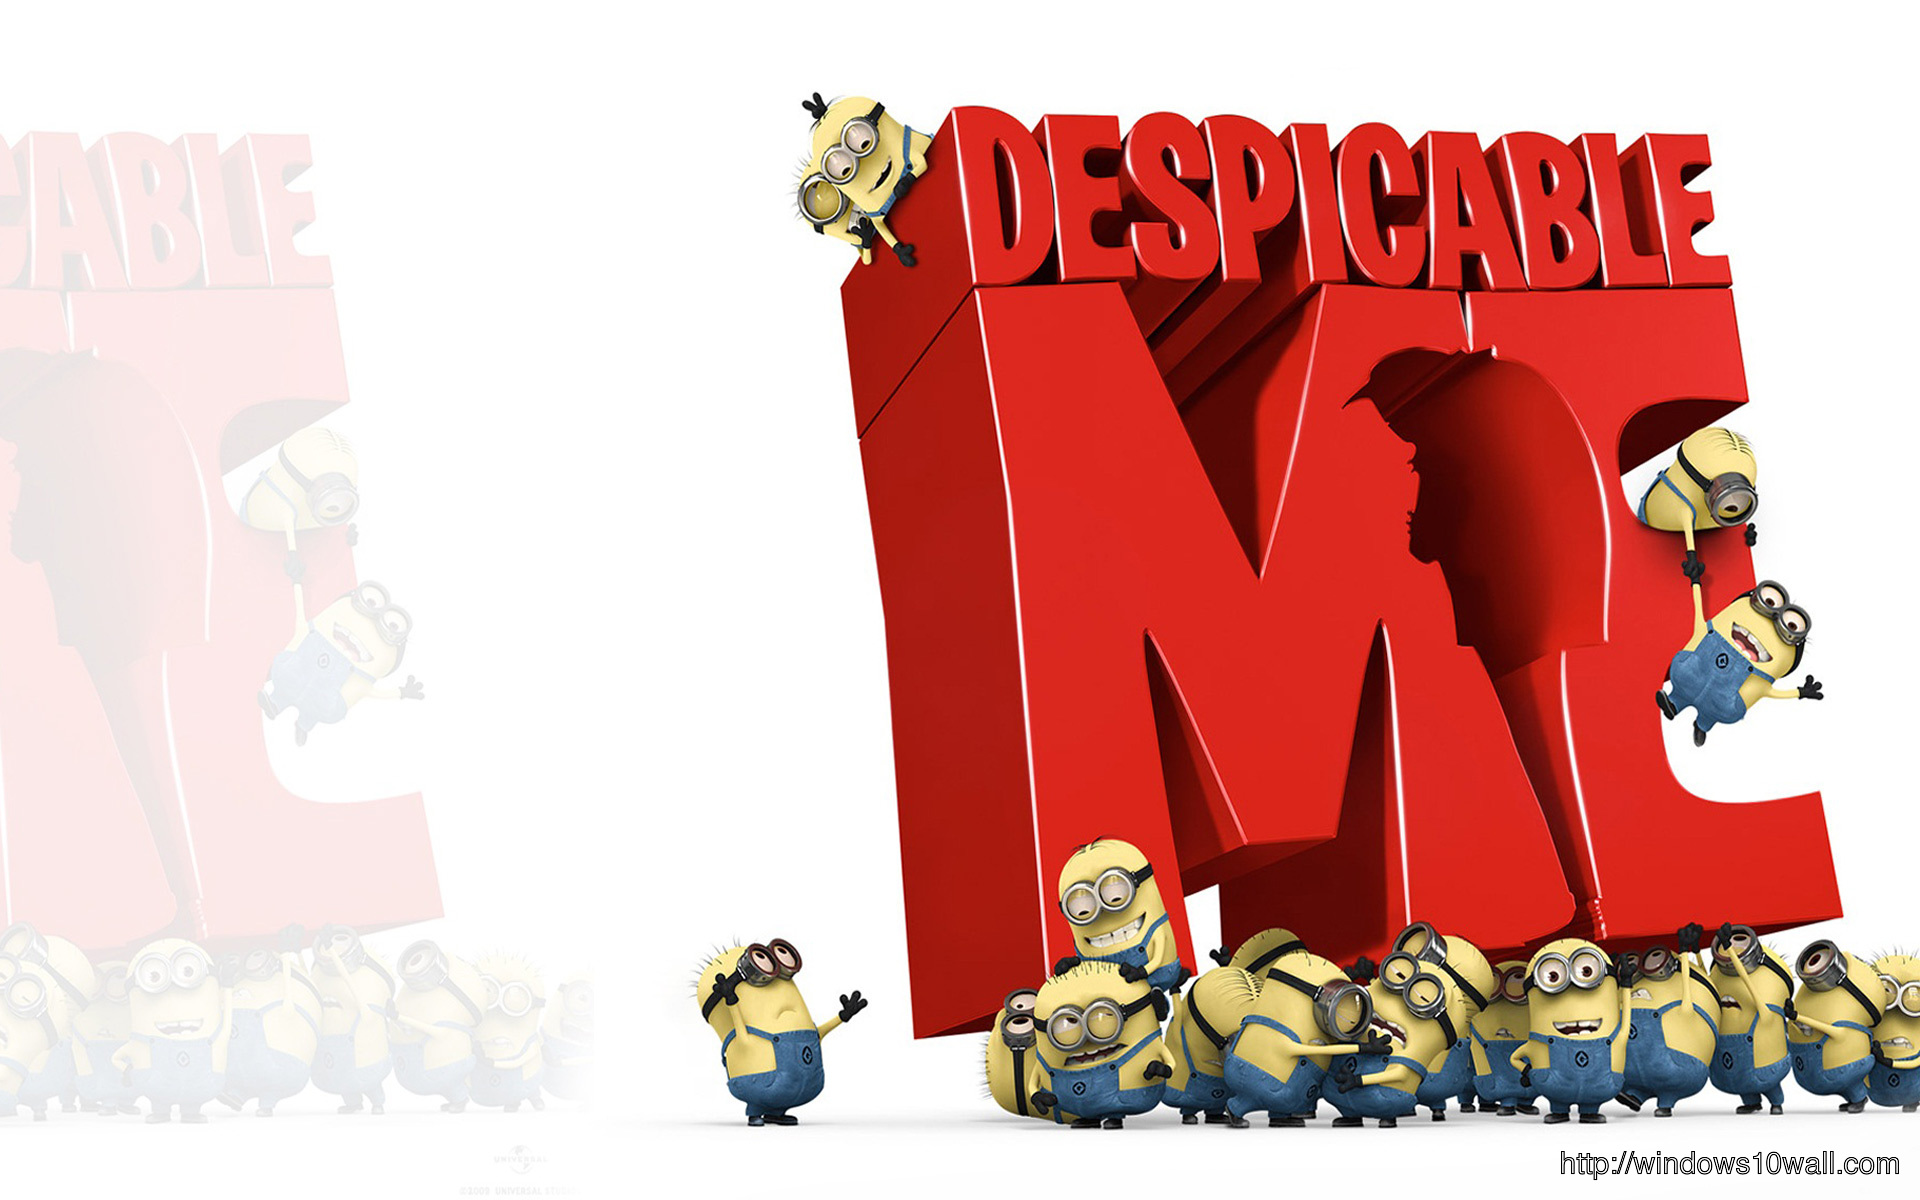 Cartoons Wallpapers - Despicable Me - Minions wallpaper